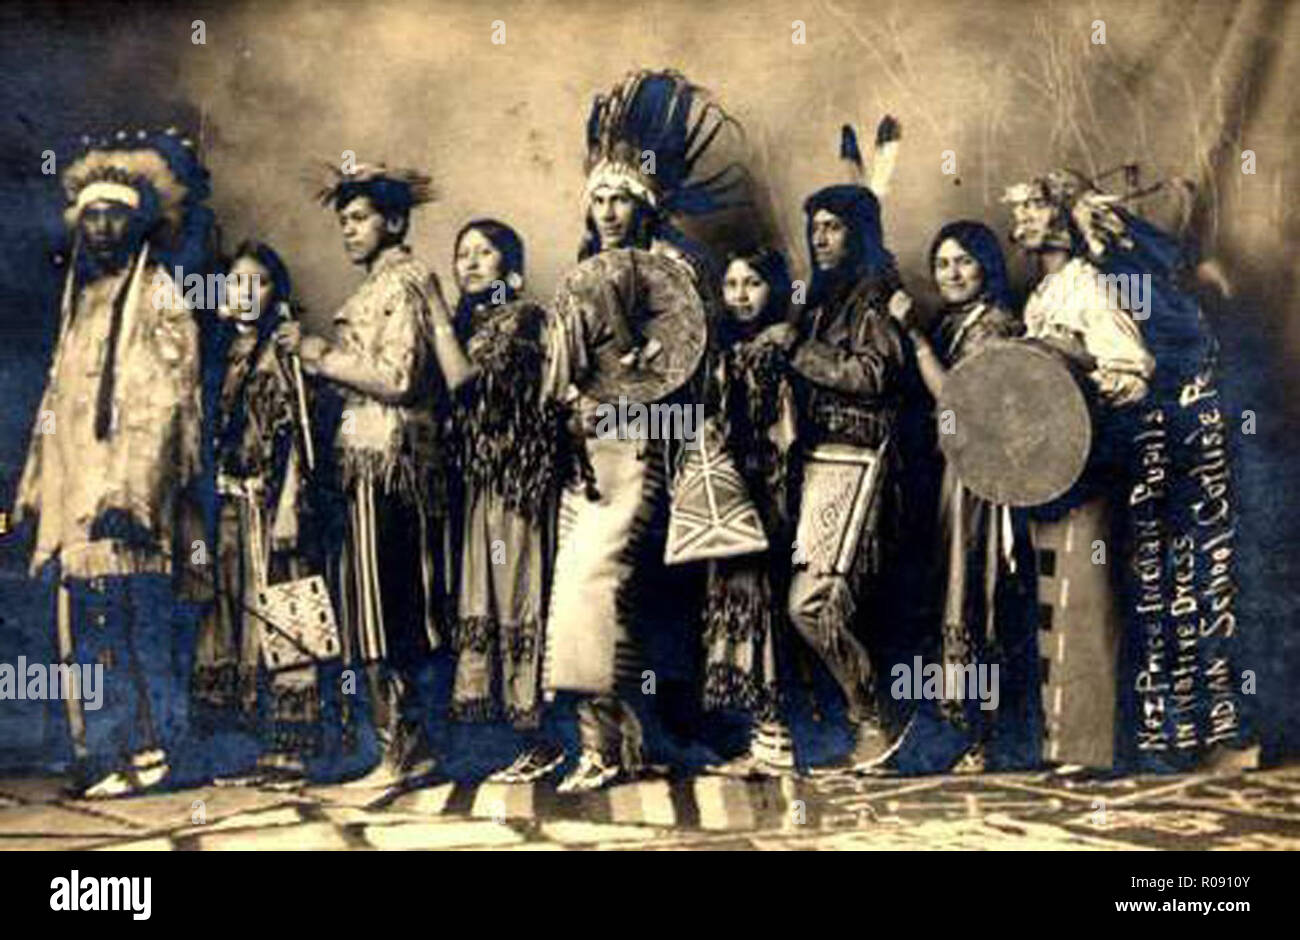 vintage photo of native americans - Stock Image